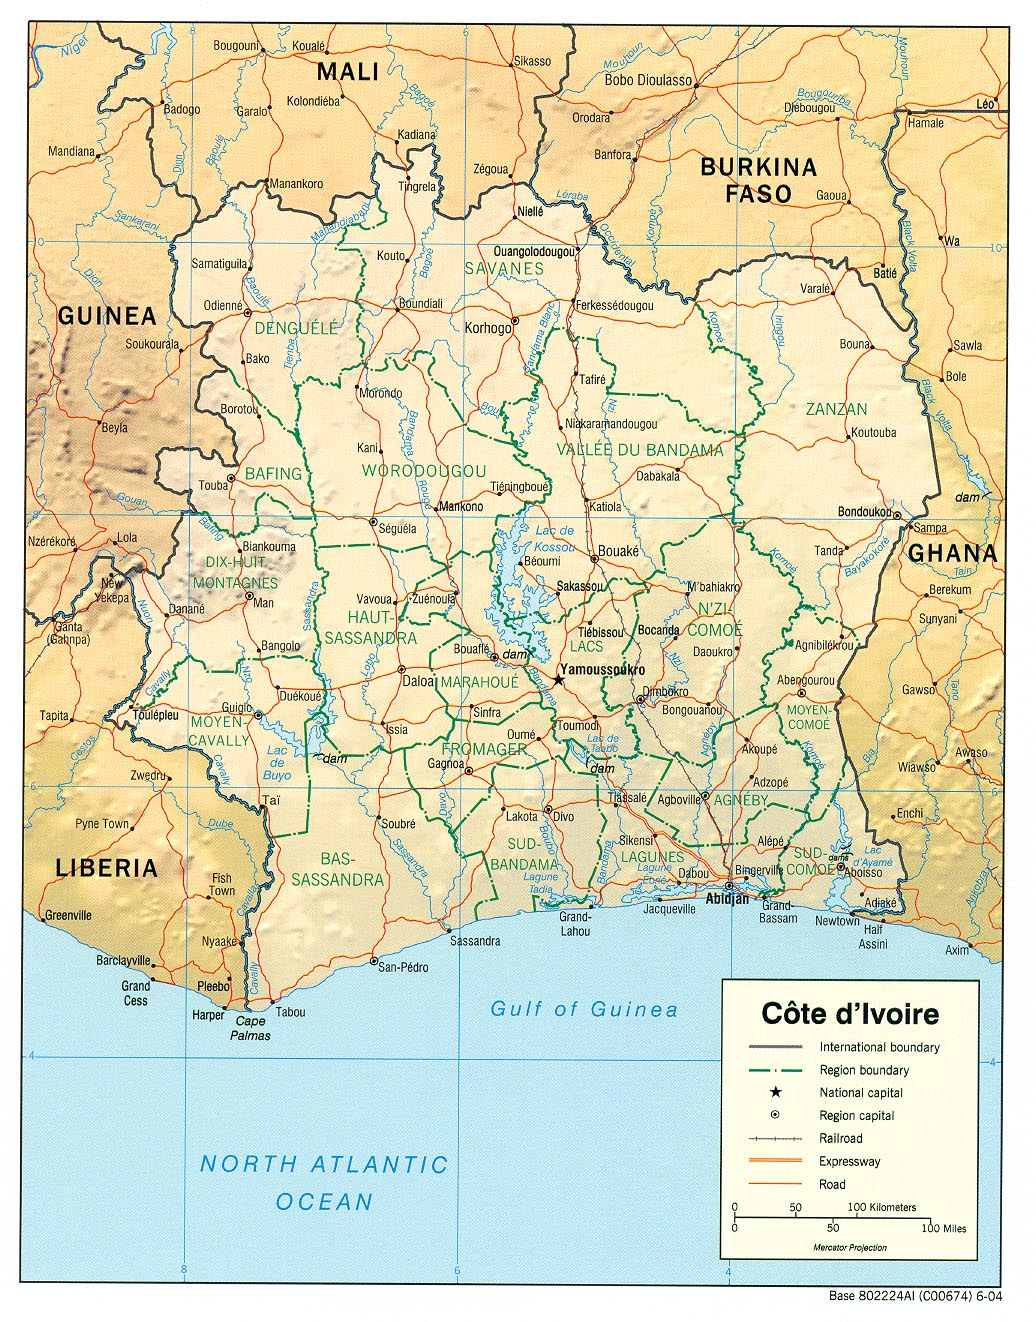 Cote d\'Ivoire (Ivory Coast) Maps - Perry-Castañeda Map Collection ...